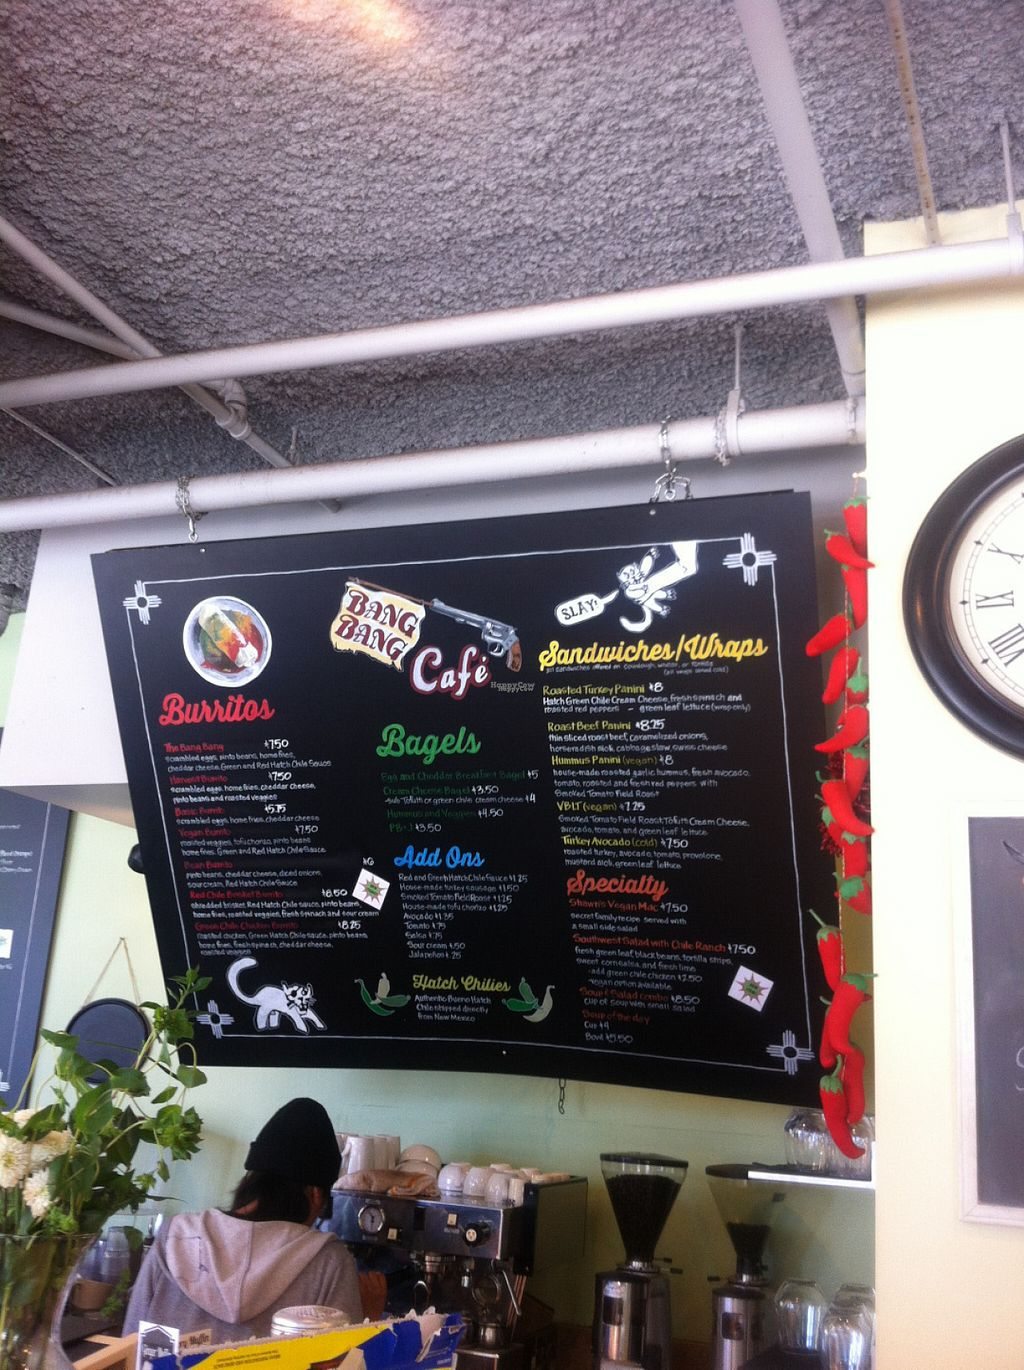 """Photo of Bang Bang Cafe  by <a href=""""/members/profile/piffelina"""">piffelina</a> <br/>Here is the menu! <br/> August 2, 2016  - <a href='/contact/abuse/image/38463/164463'>Report</a>"""